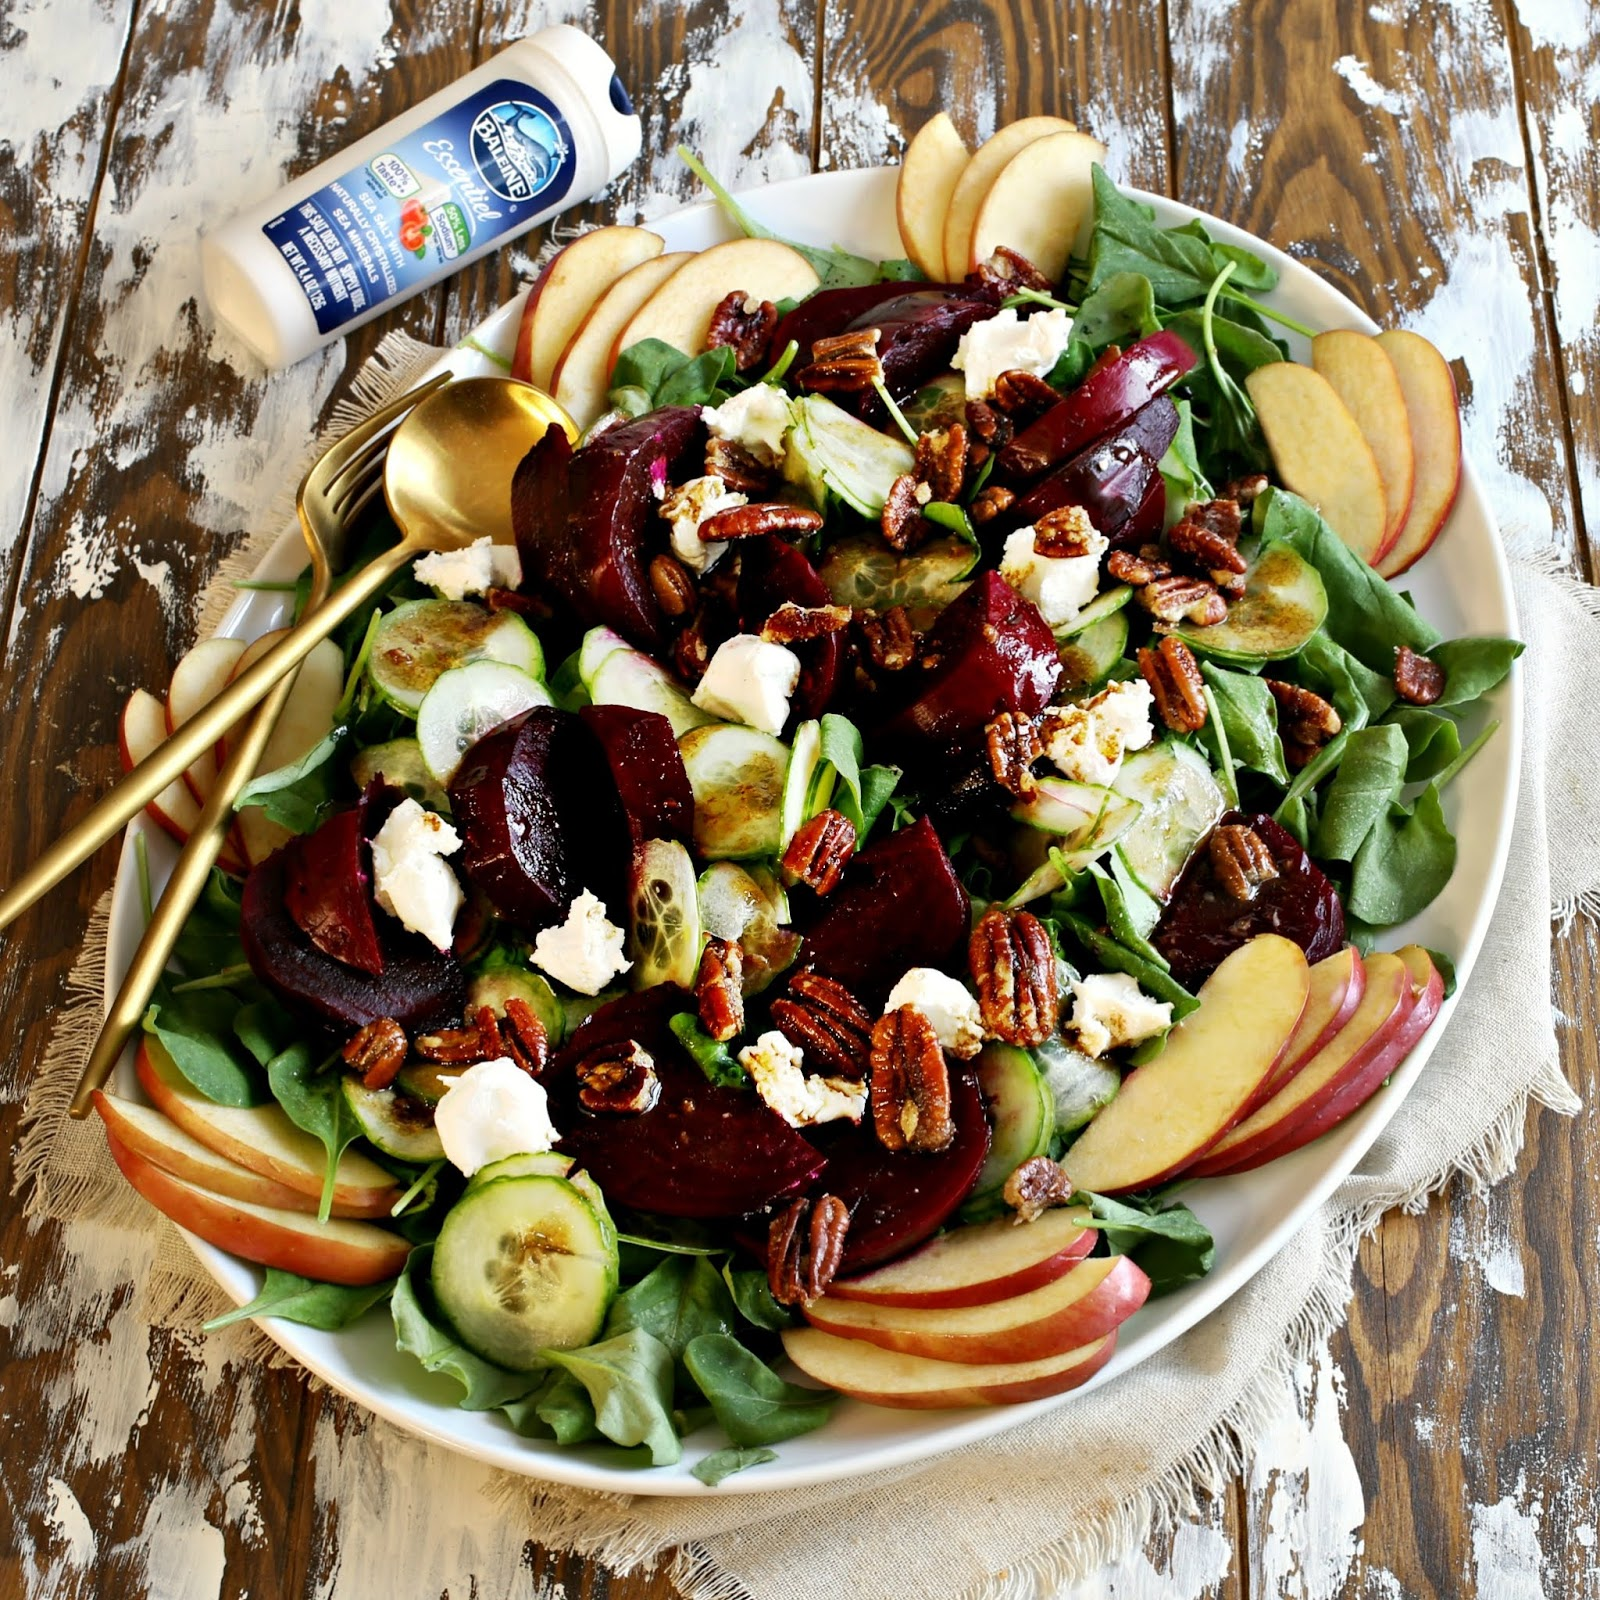 Recipe for a crunchy vegetable salad with arugula, apples, cucumbers, beets, goat cheese and candied pecans.